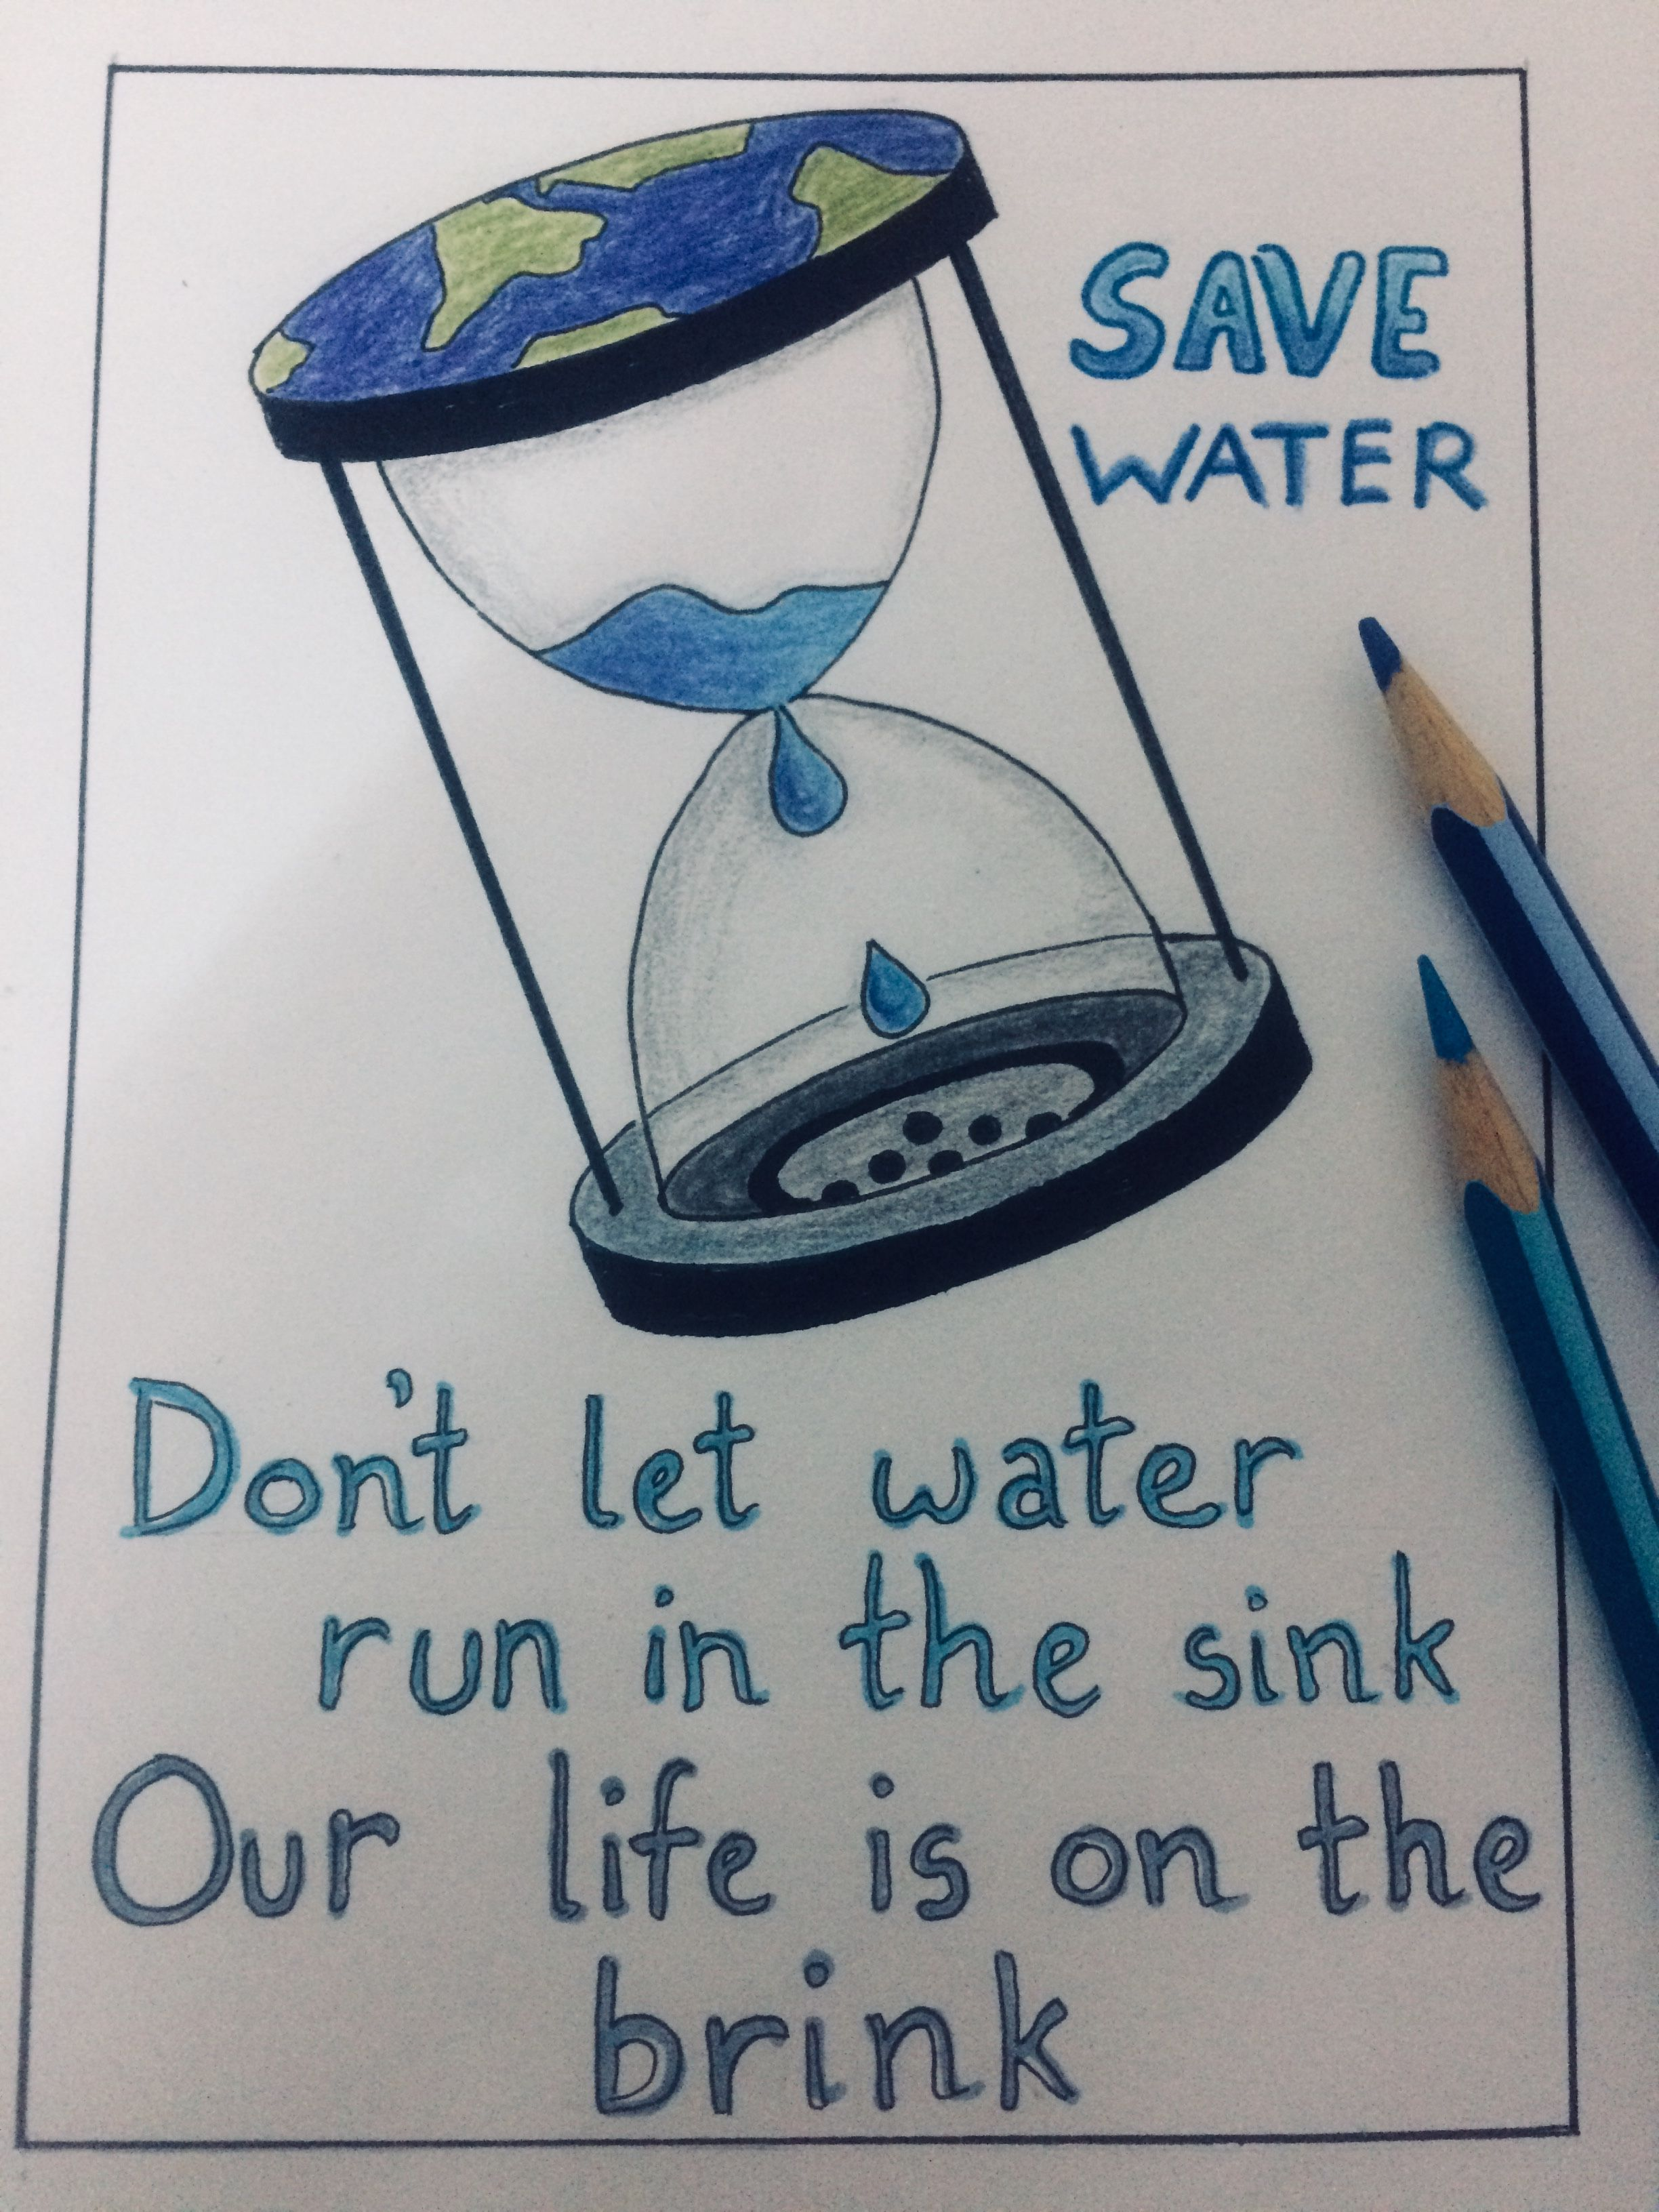 Save Water Poster Save Water Poster Drawing Save Water Poster Save Water Drawing